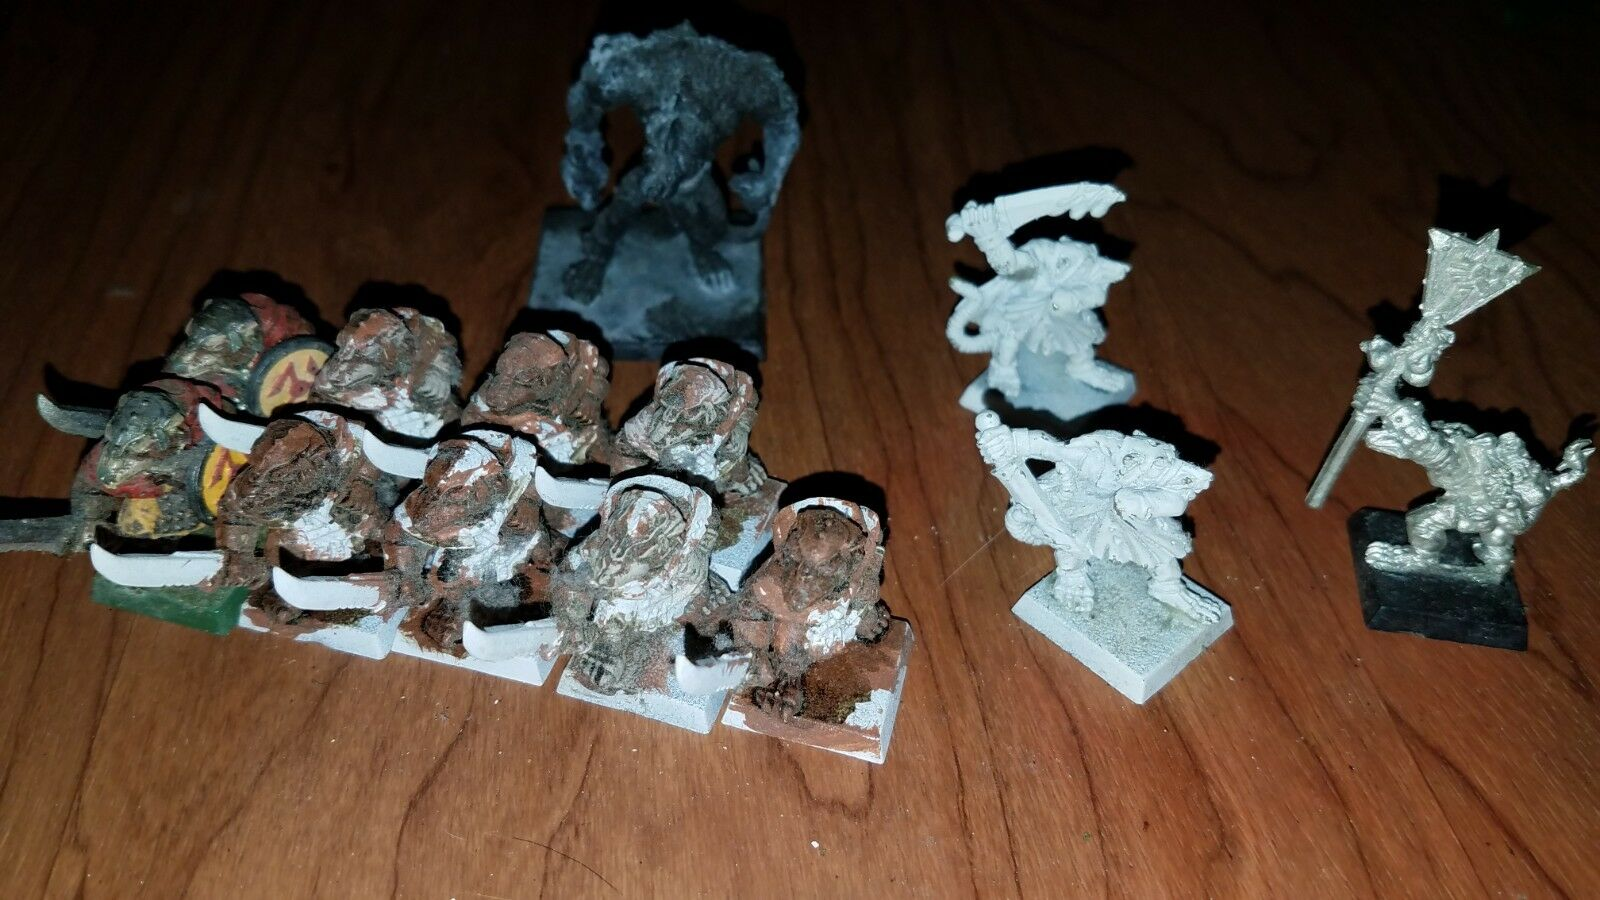 Games Workshop  Warhammer Fantasy Plastic + Metal - 12 SKAVEN TROOPER, 1 RAT OGR